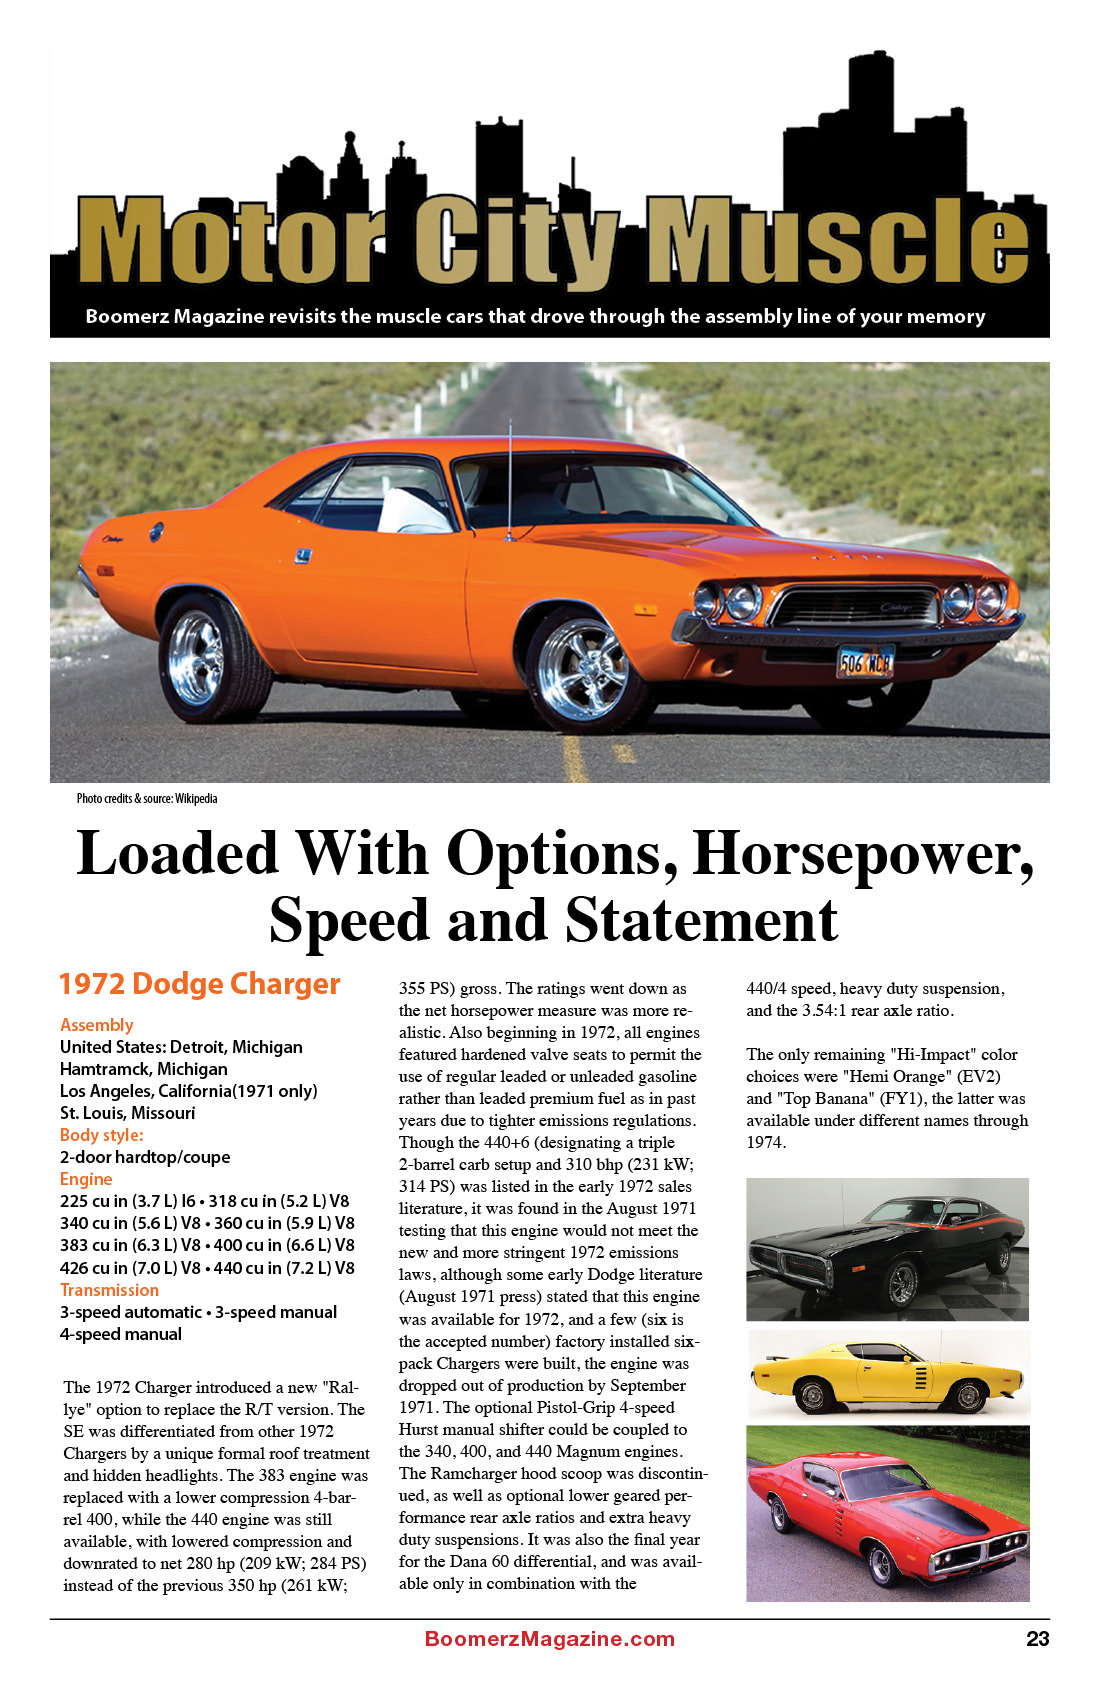 2018 October Boomerz Magazine Page 23 Motor-City-Muscle 1972-Dodge-Charger